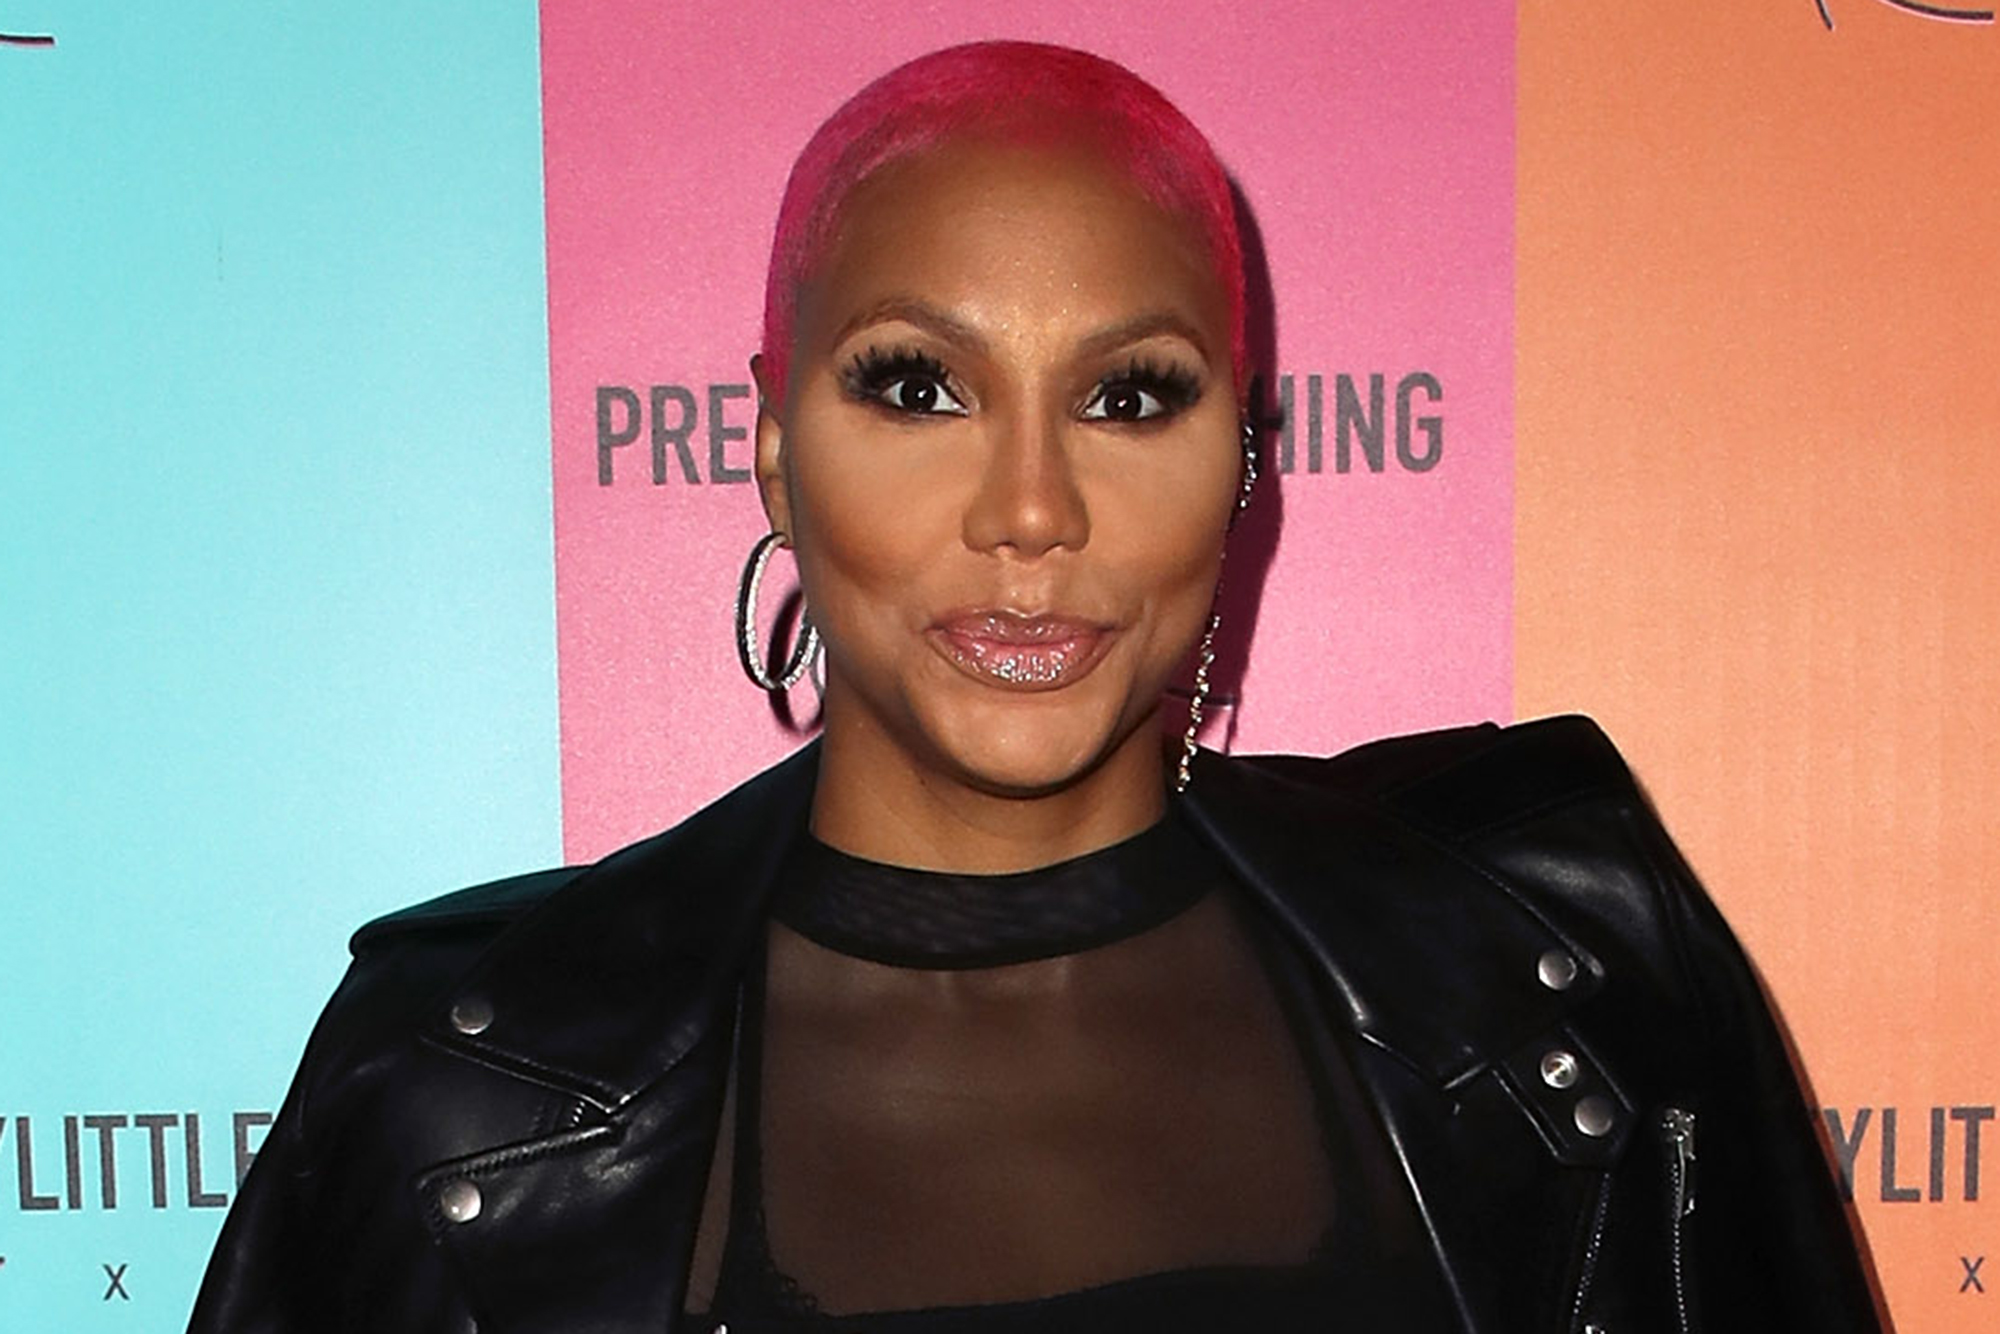 tamar-braxton-talks-about-money-power-and-respect-in-her-new-podcast-episode